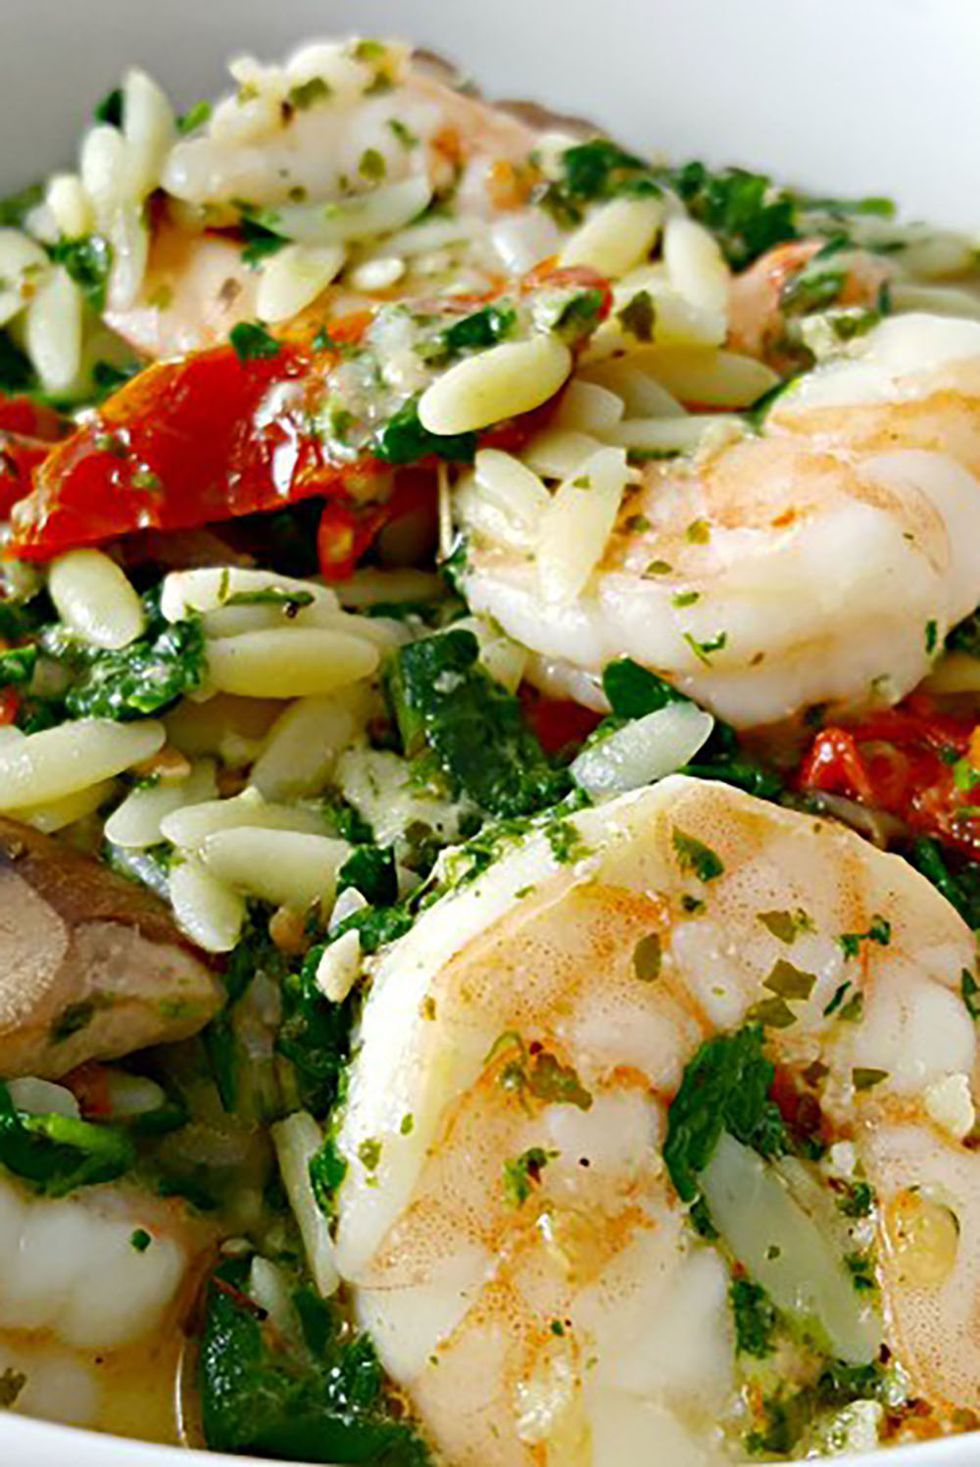 55 Dinner Ideas for Two for the Most Romantic Date Night ...